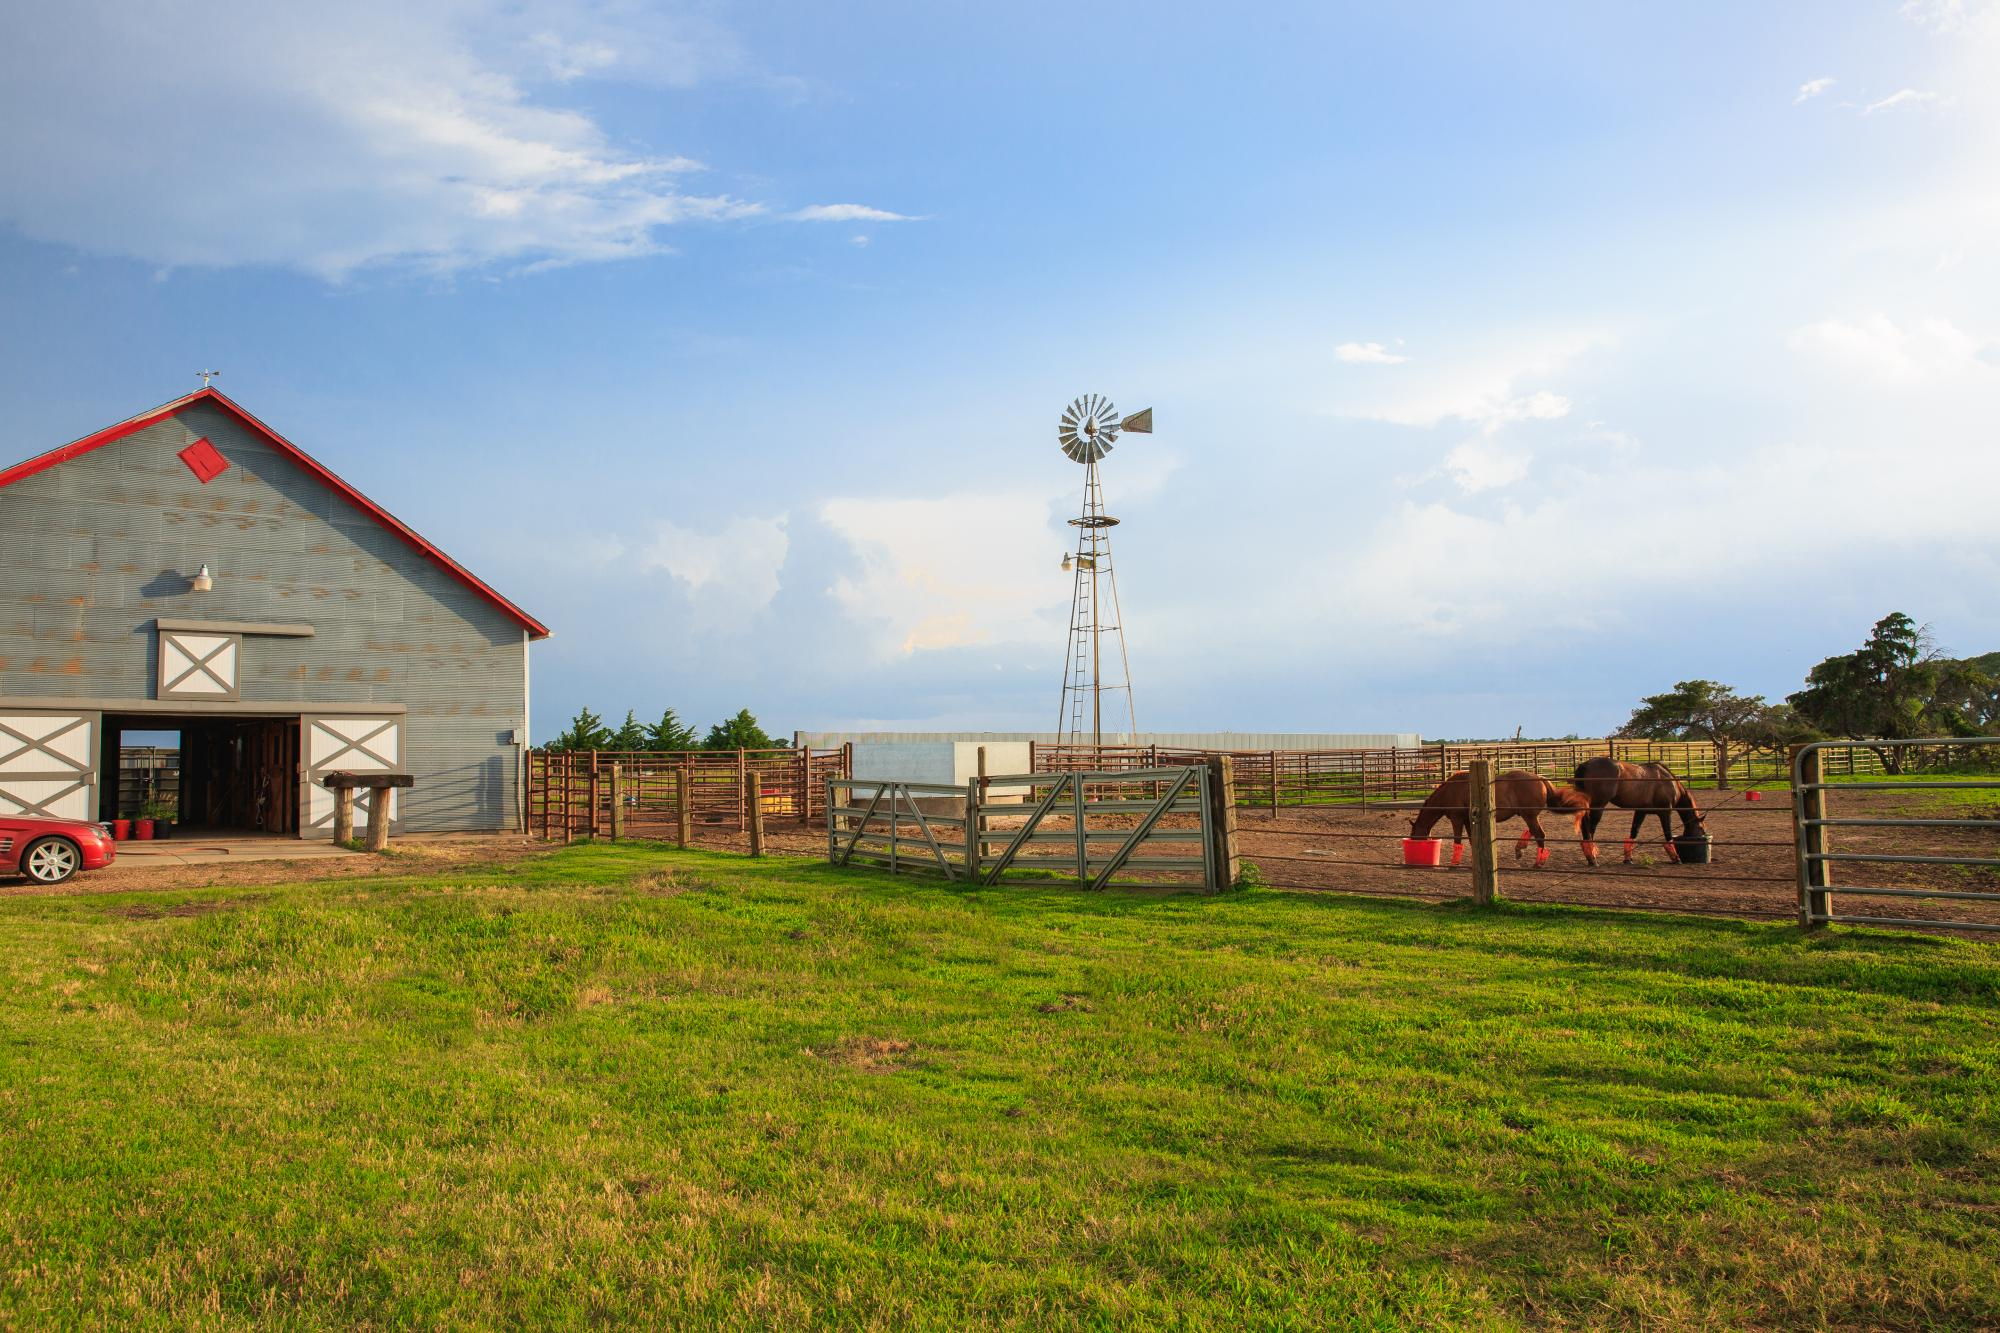 life in rural wichita, kansas with horses and barn